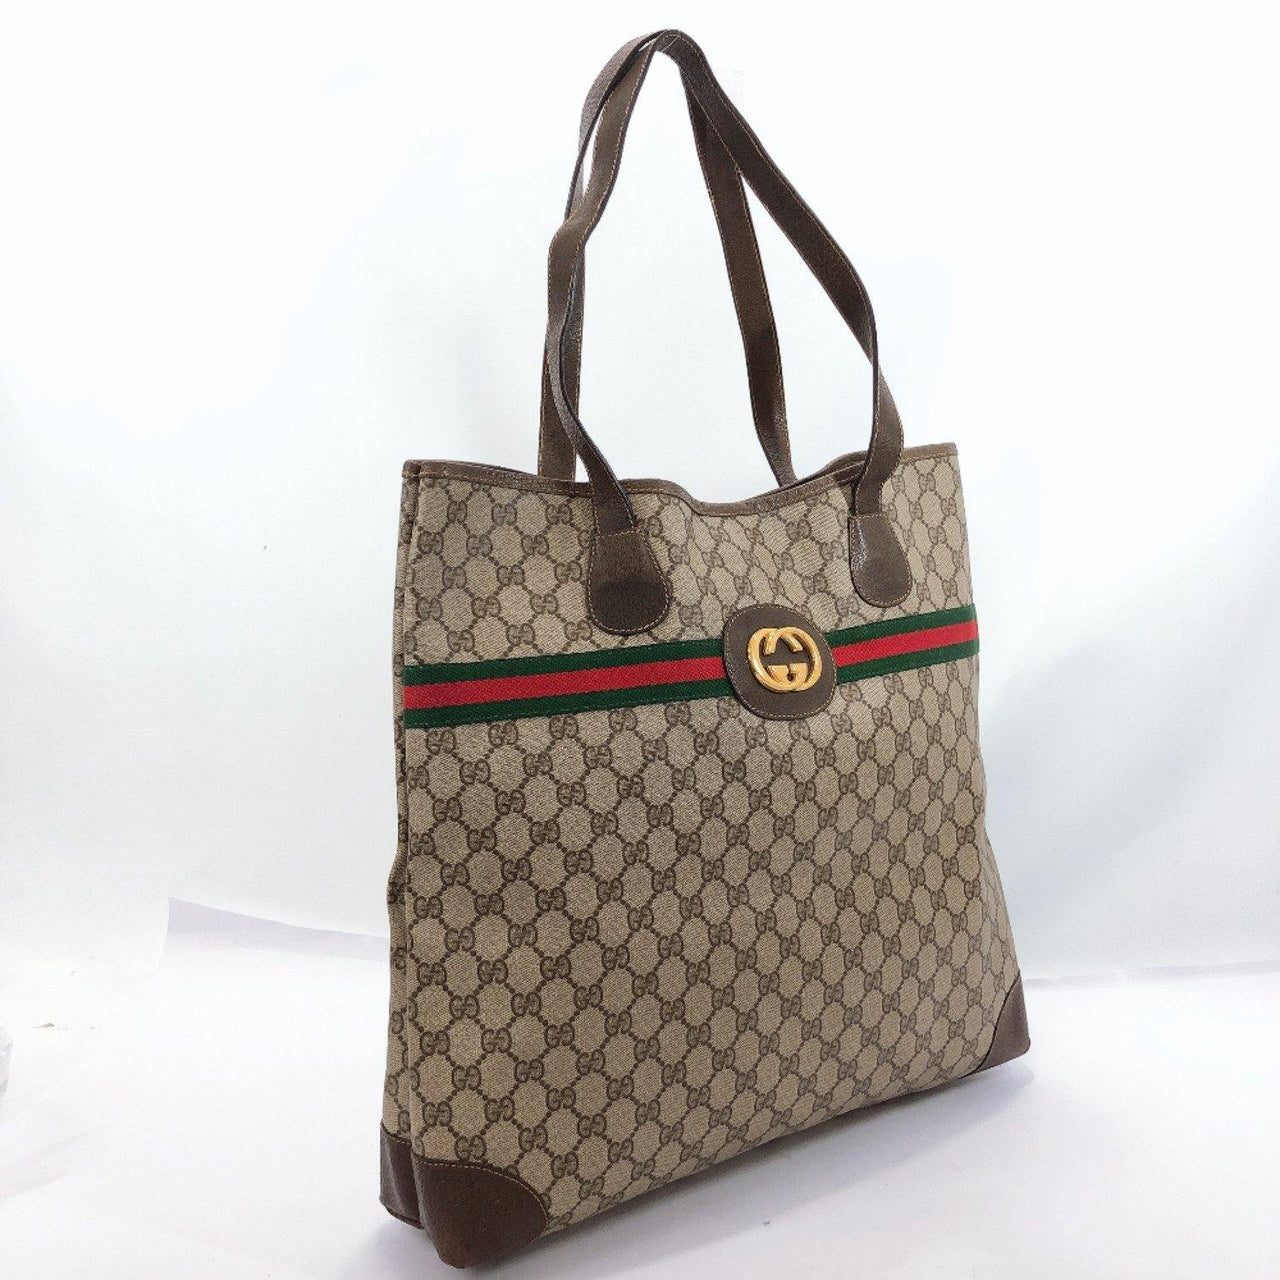 GUCCI Tote Bag Sherry line vintage GG Supreme Canvas Brown Women Used - JP-BRANDS.com